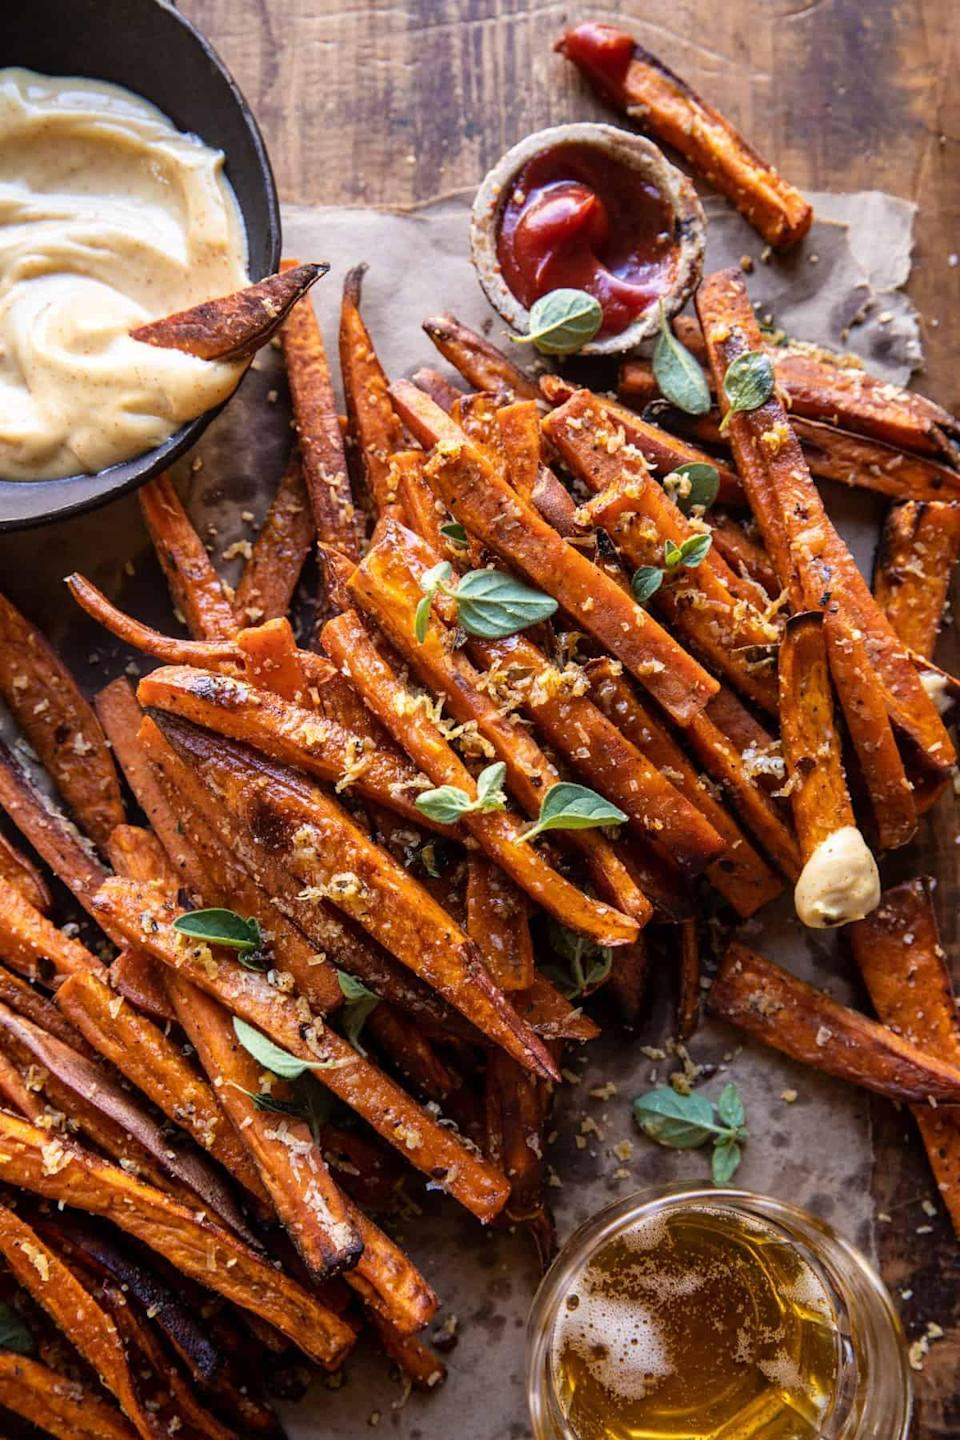 "<p>Make the most of sweet potatoes this season when you cook up these perfectly crunchy fries. Who can say no to warm potato slices with a rich and spicy aioli, anyway?</p> <p><strong>Get the recipe:</strong> <a href=""https://www.halfbakedharvest.com/garlic-parmesan-sweet-potato-fries/"" class=""link rapid-noclick-resp"" rel=""nofollow noopener"" target=""_blank"" data-ylk=""slk:garlic parmesan sweet potato fries with spicy aioli"">garlic parmesan sweet potato fries with spicy aioli</a></p>"